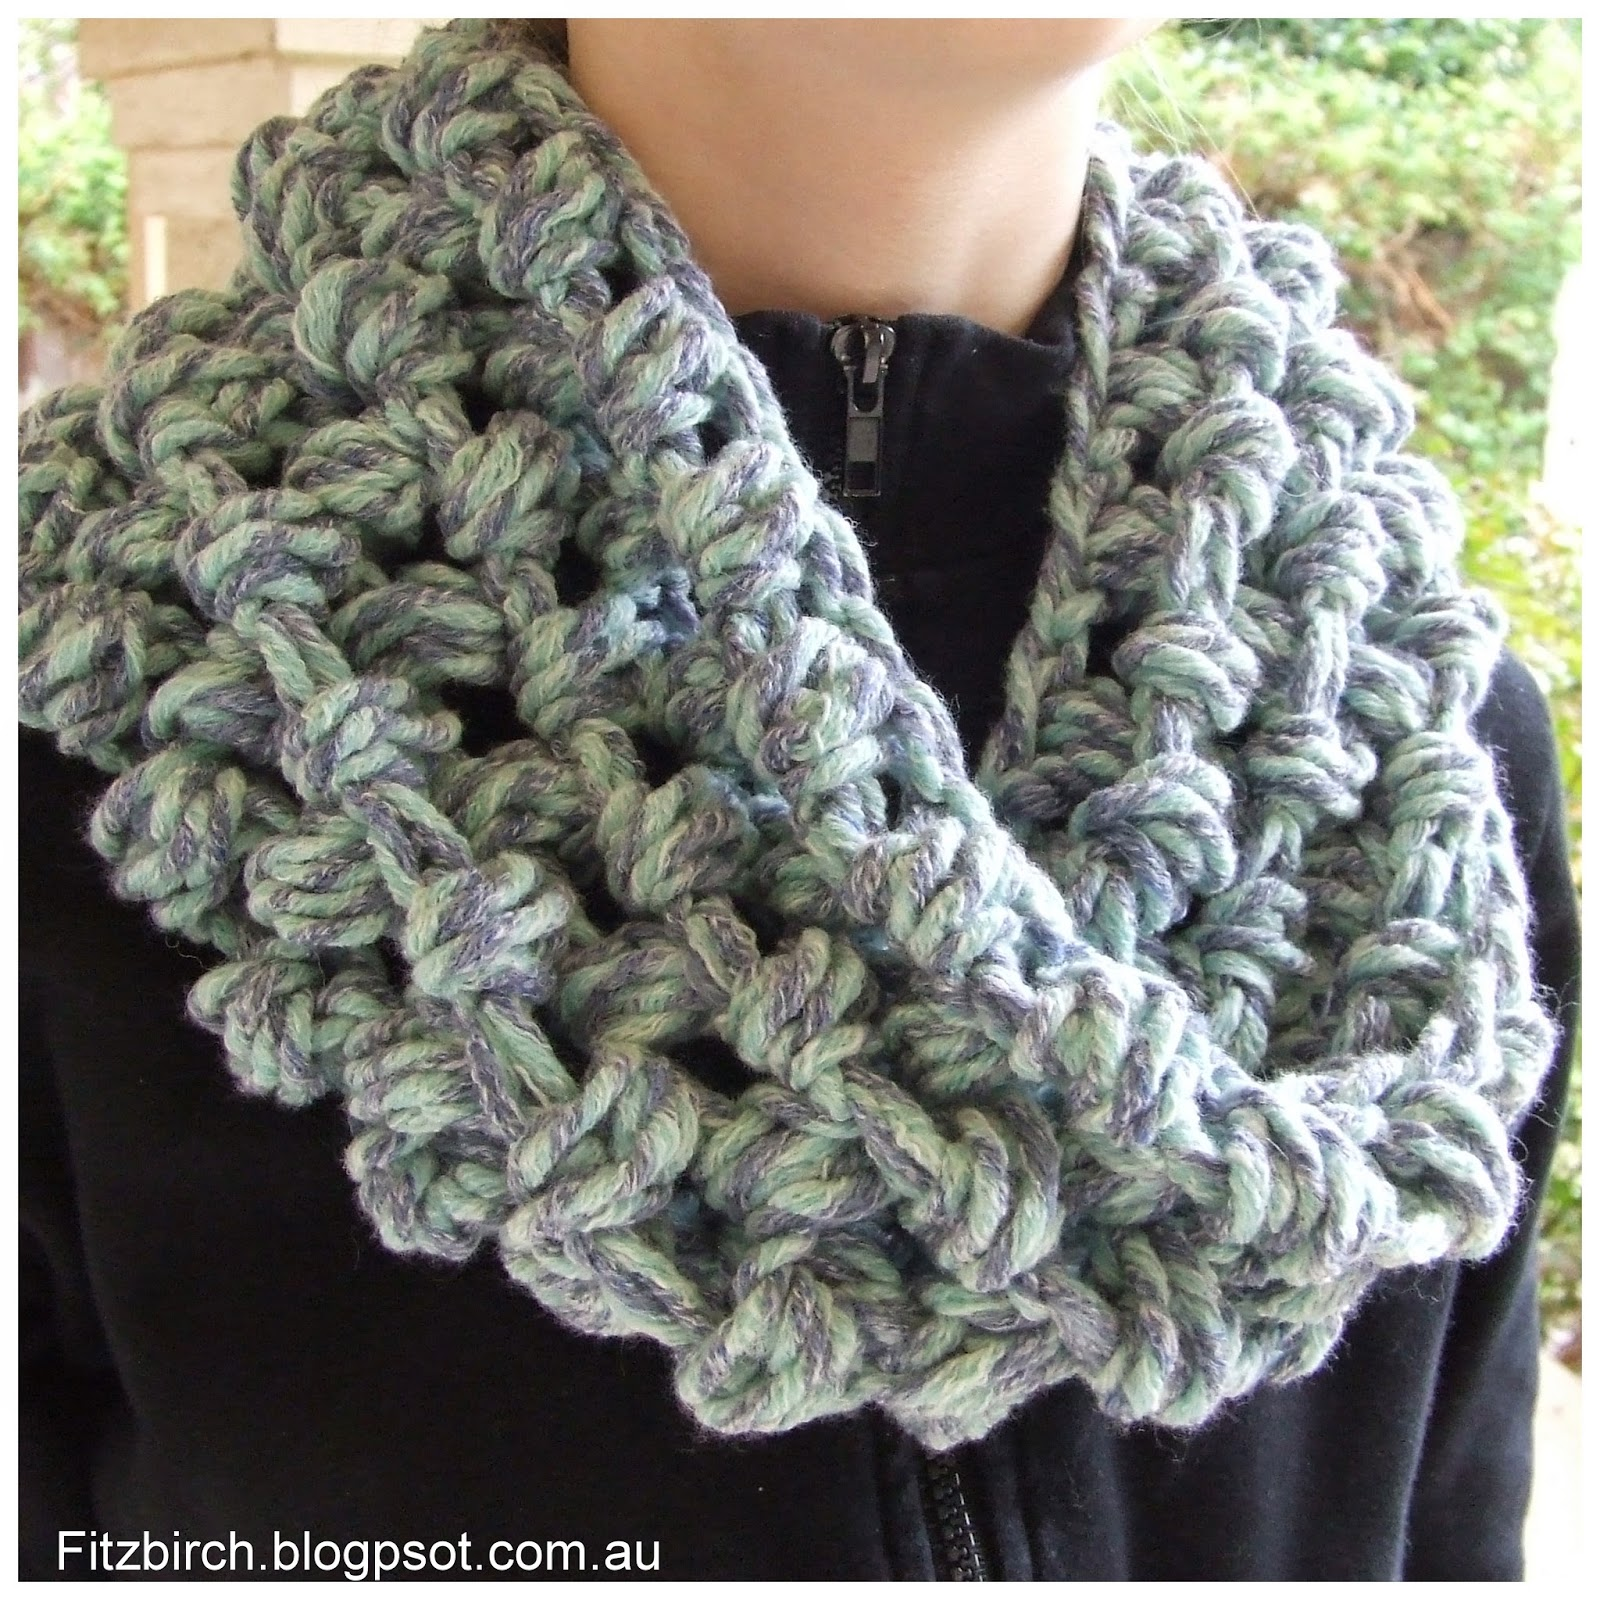 Crochet Patterns For Cowl : FitzBirch Crafts: Cluster Crochet Cowl